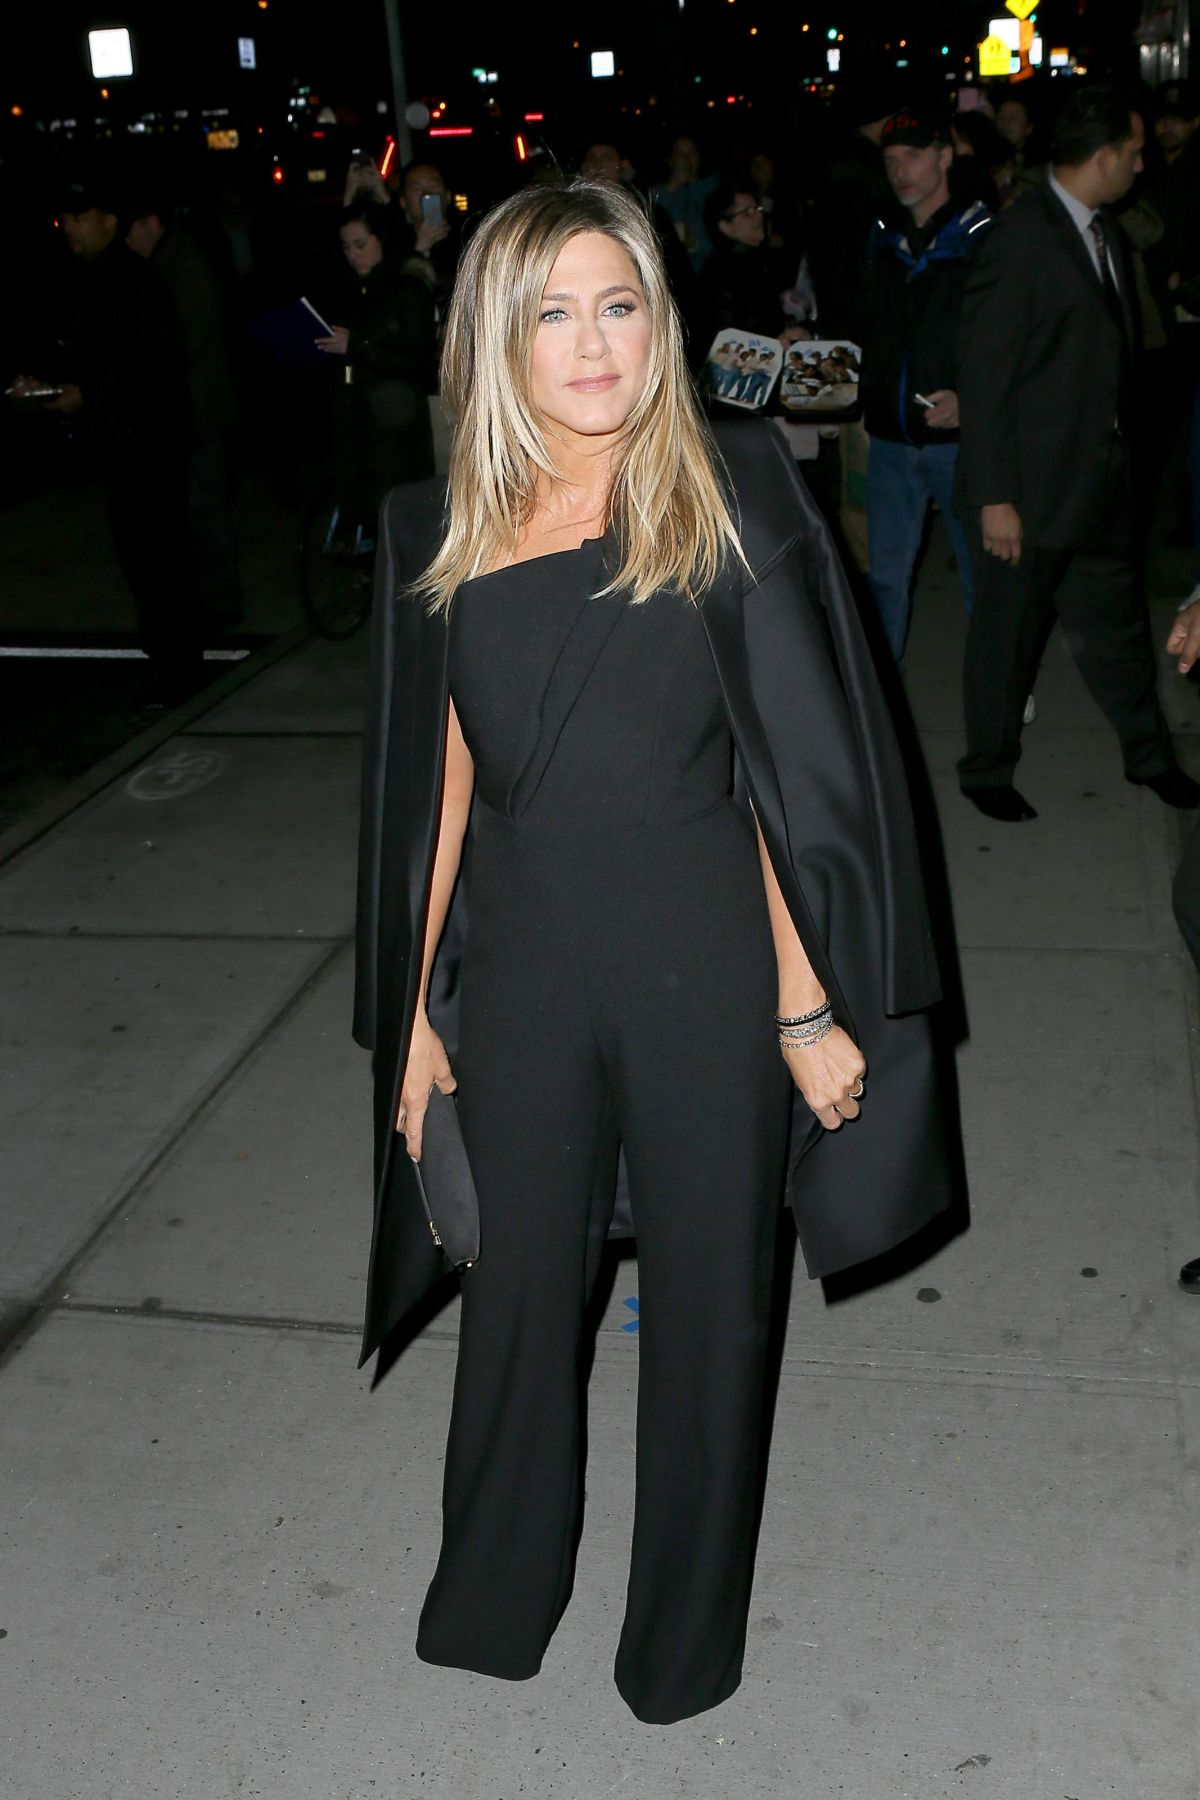 Jennifer Aniston Seen at 'Office Christmas Party' at Landmark Sunshine Cinema, NY   jennifer-aniston-seen-at-office-christmas-party-at-landmark-sunshine-cinema-ny_5